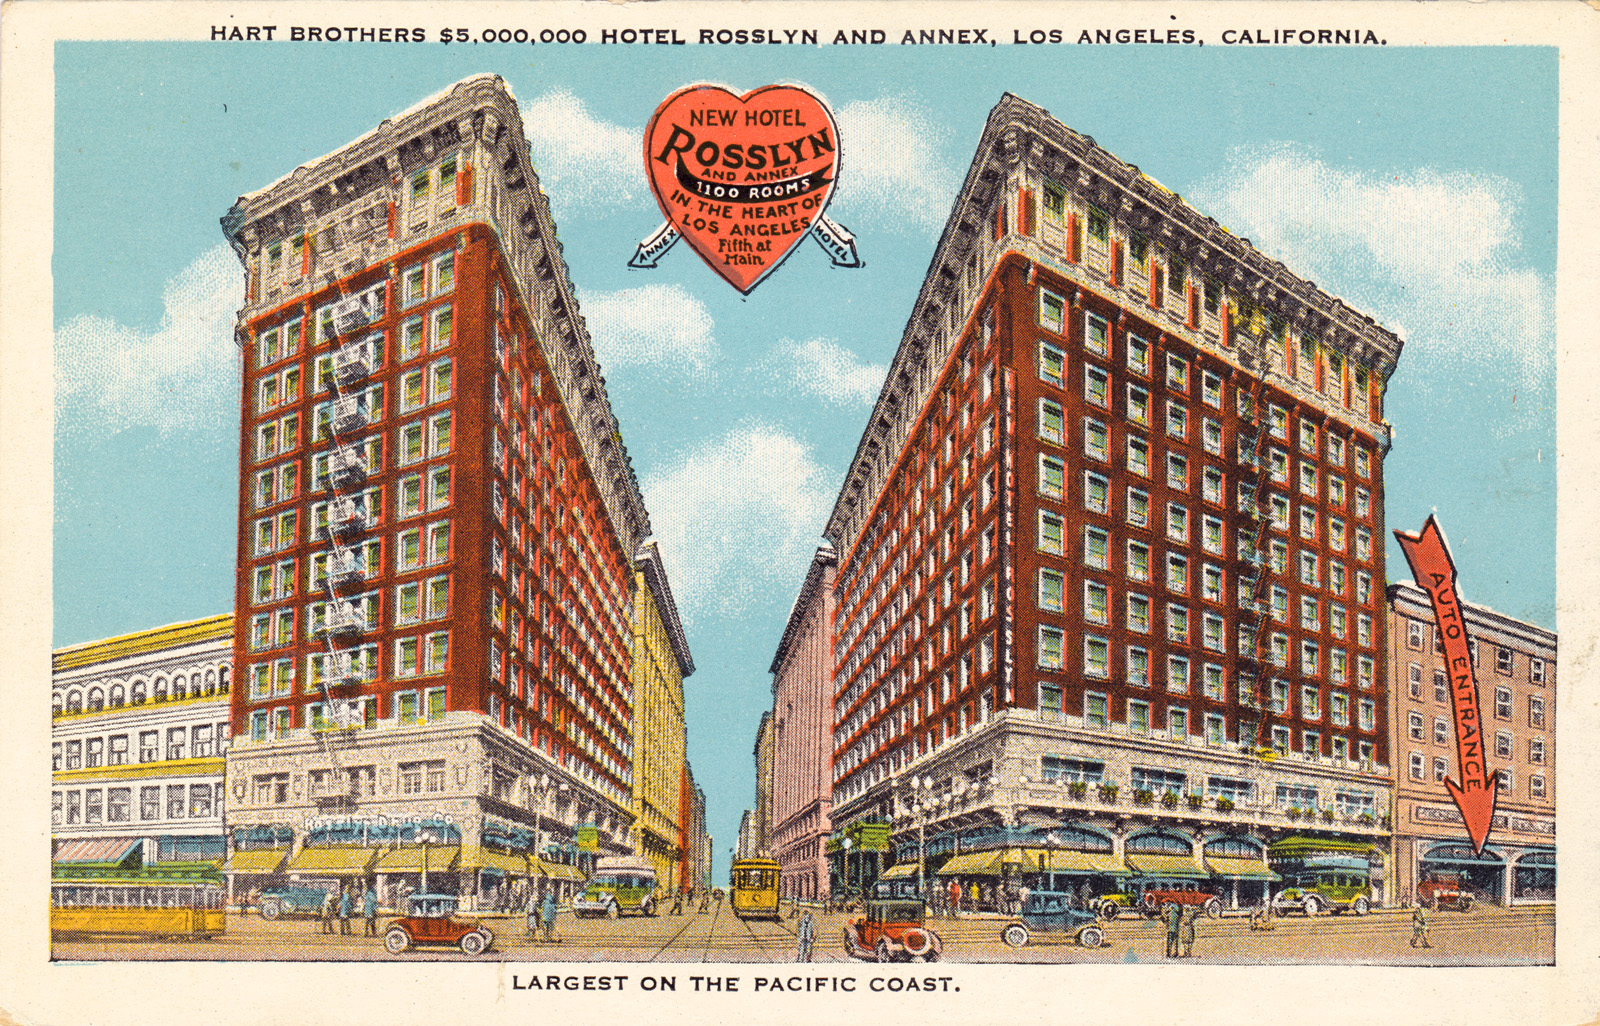 Postcard of the Rosslyn Hotel, still remaining in downtown Los Angeles as affordable housing.